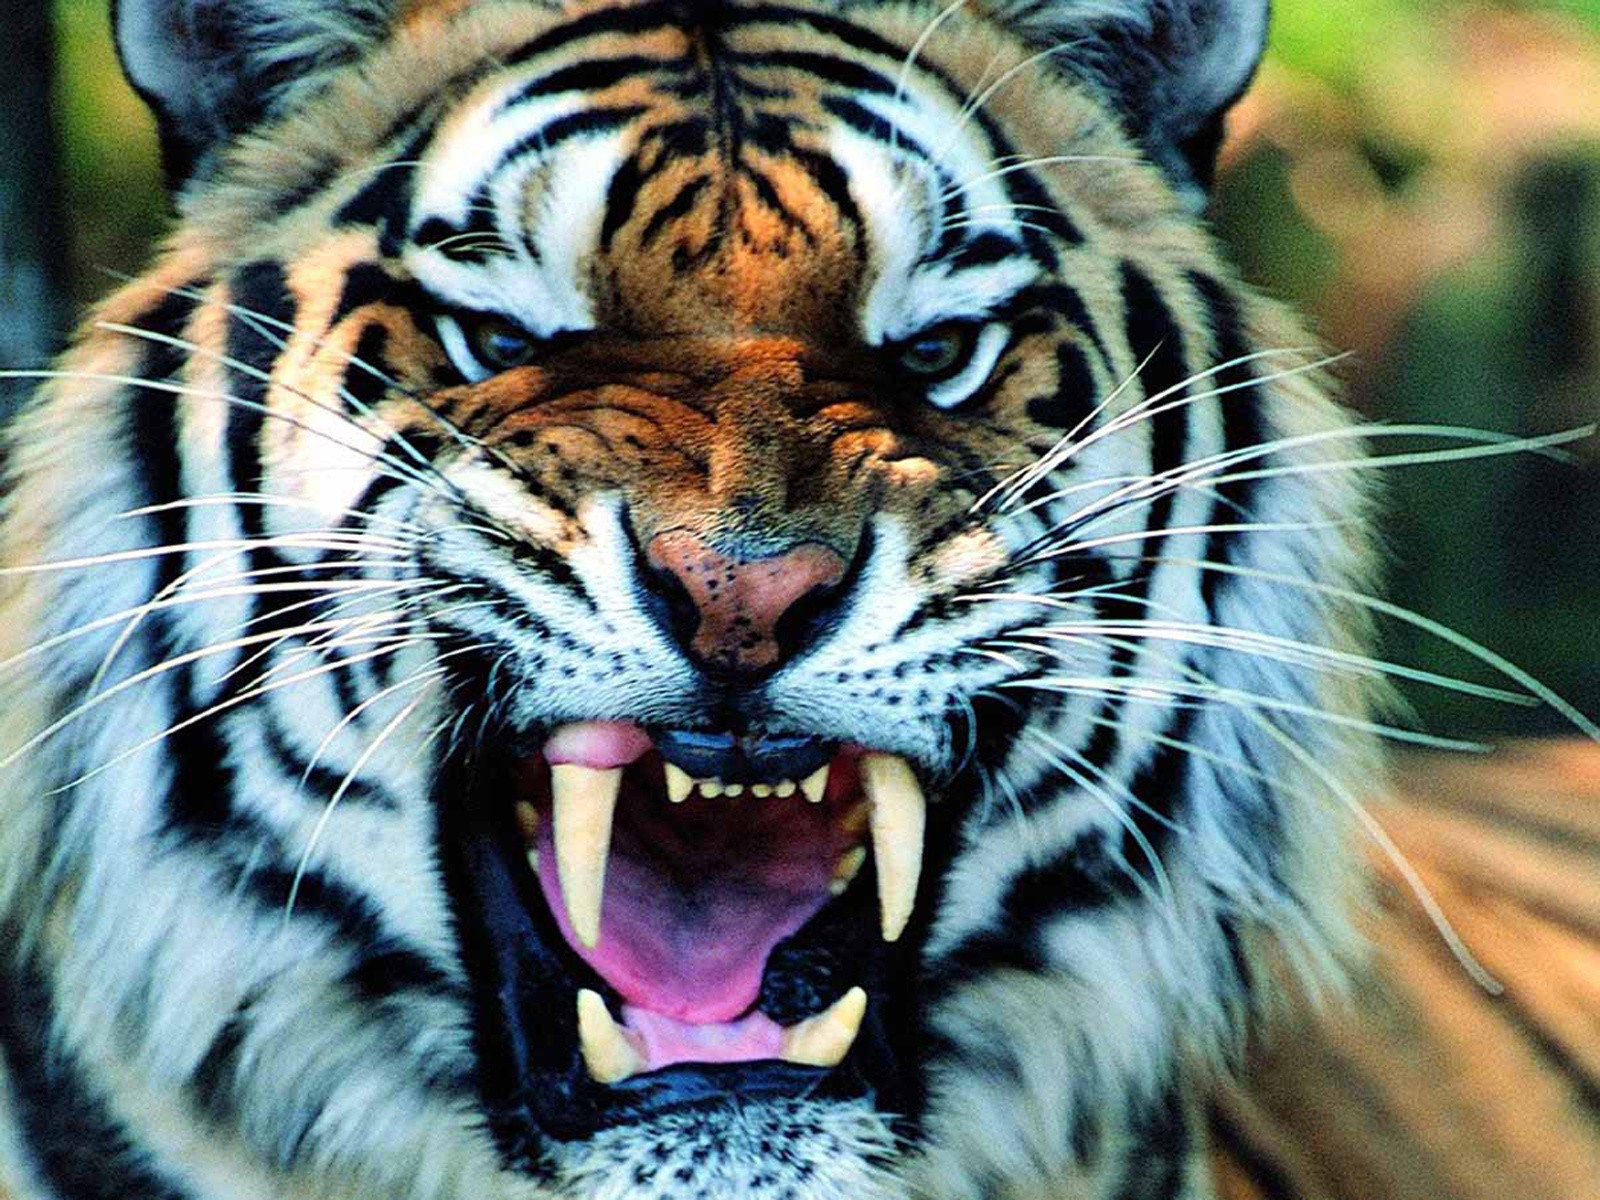 angry tiger face wallpaper - photo #15